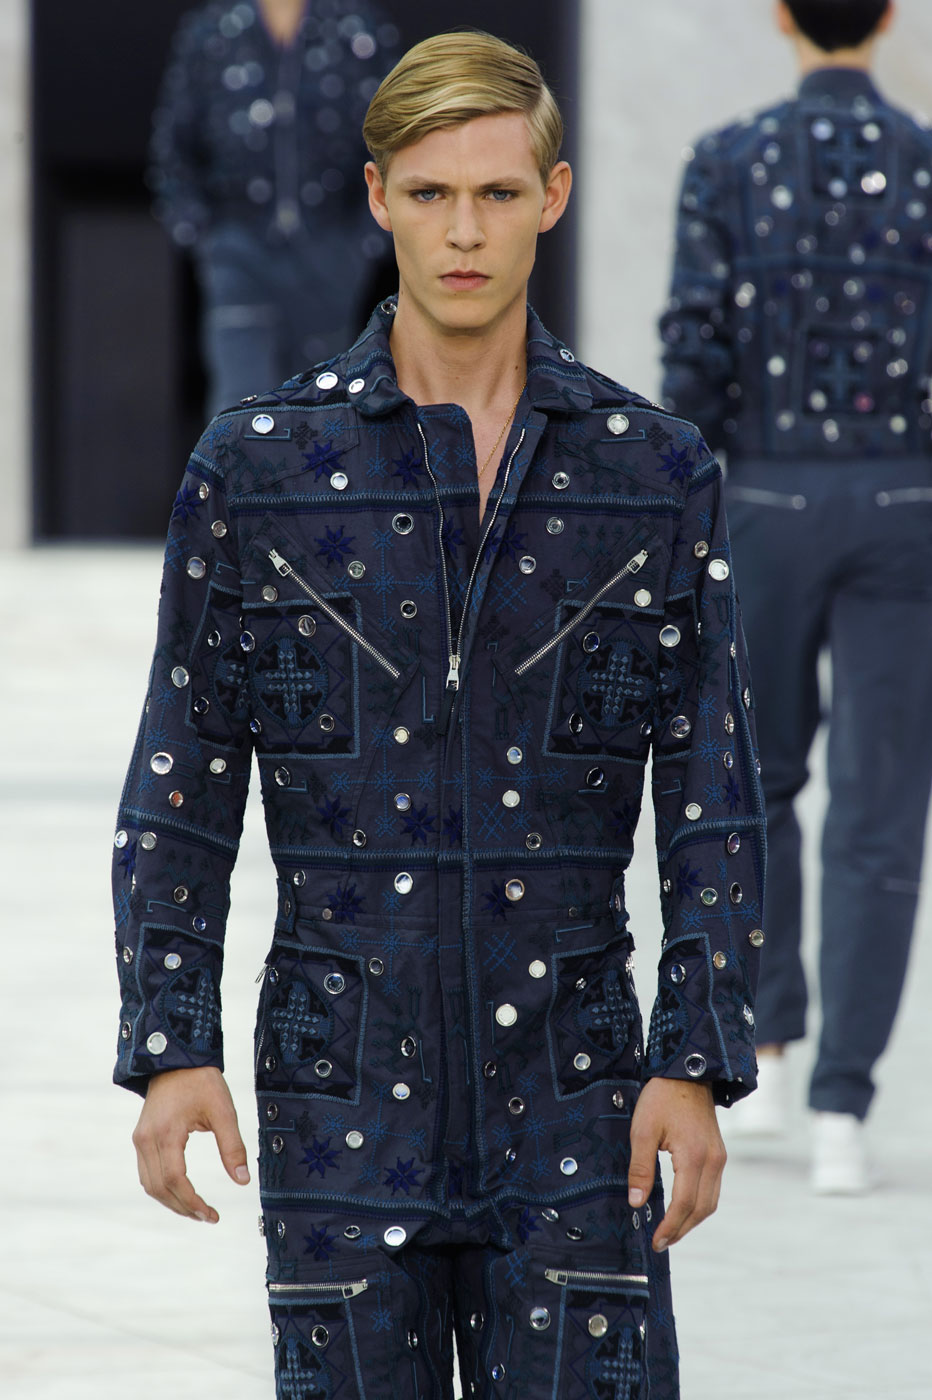 Louis Vuitton Men's Fashion